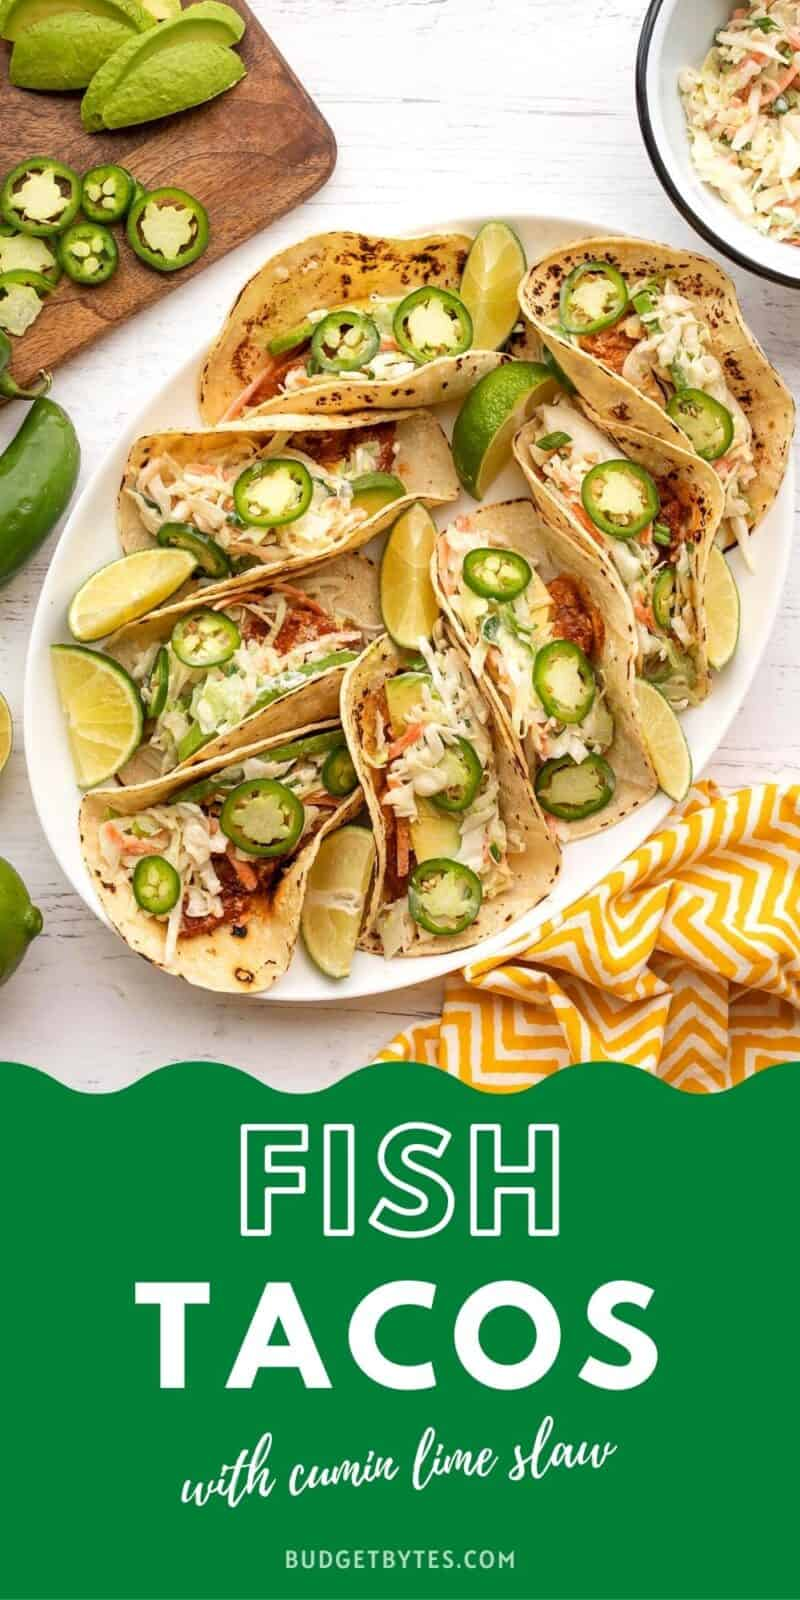 Fish tacos on a platter, title text at the bottom in green